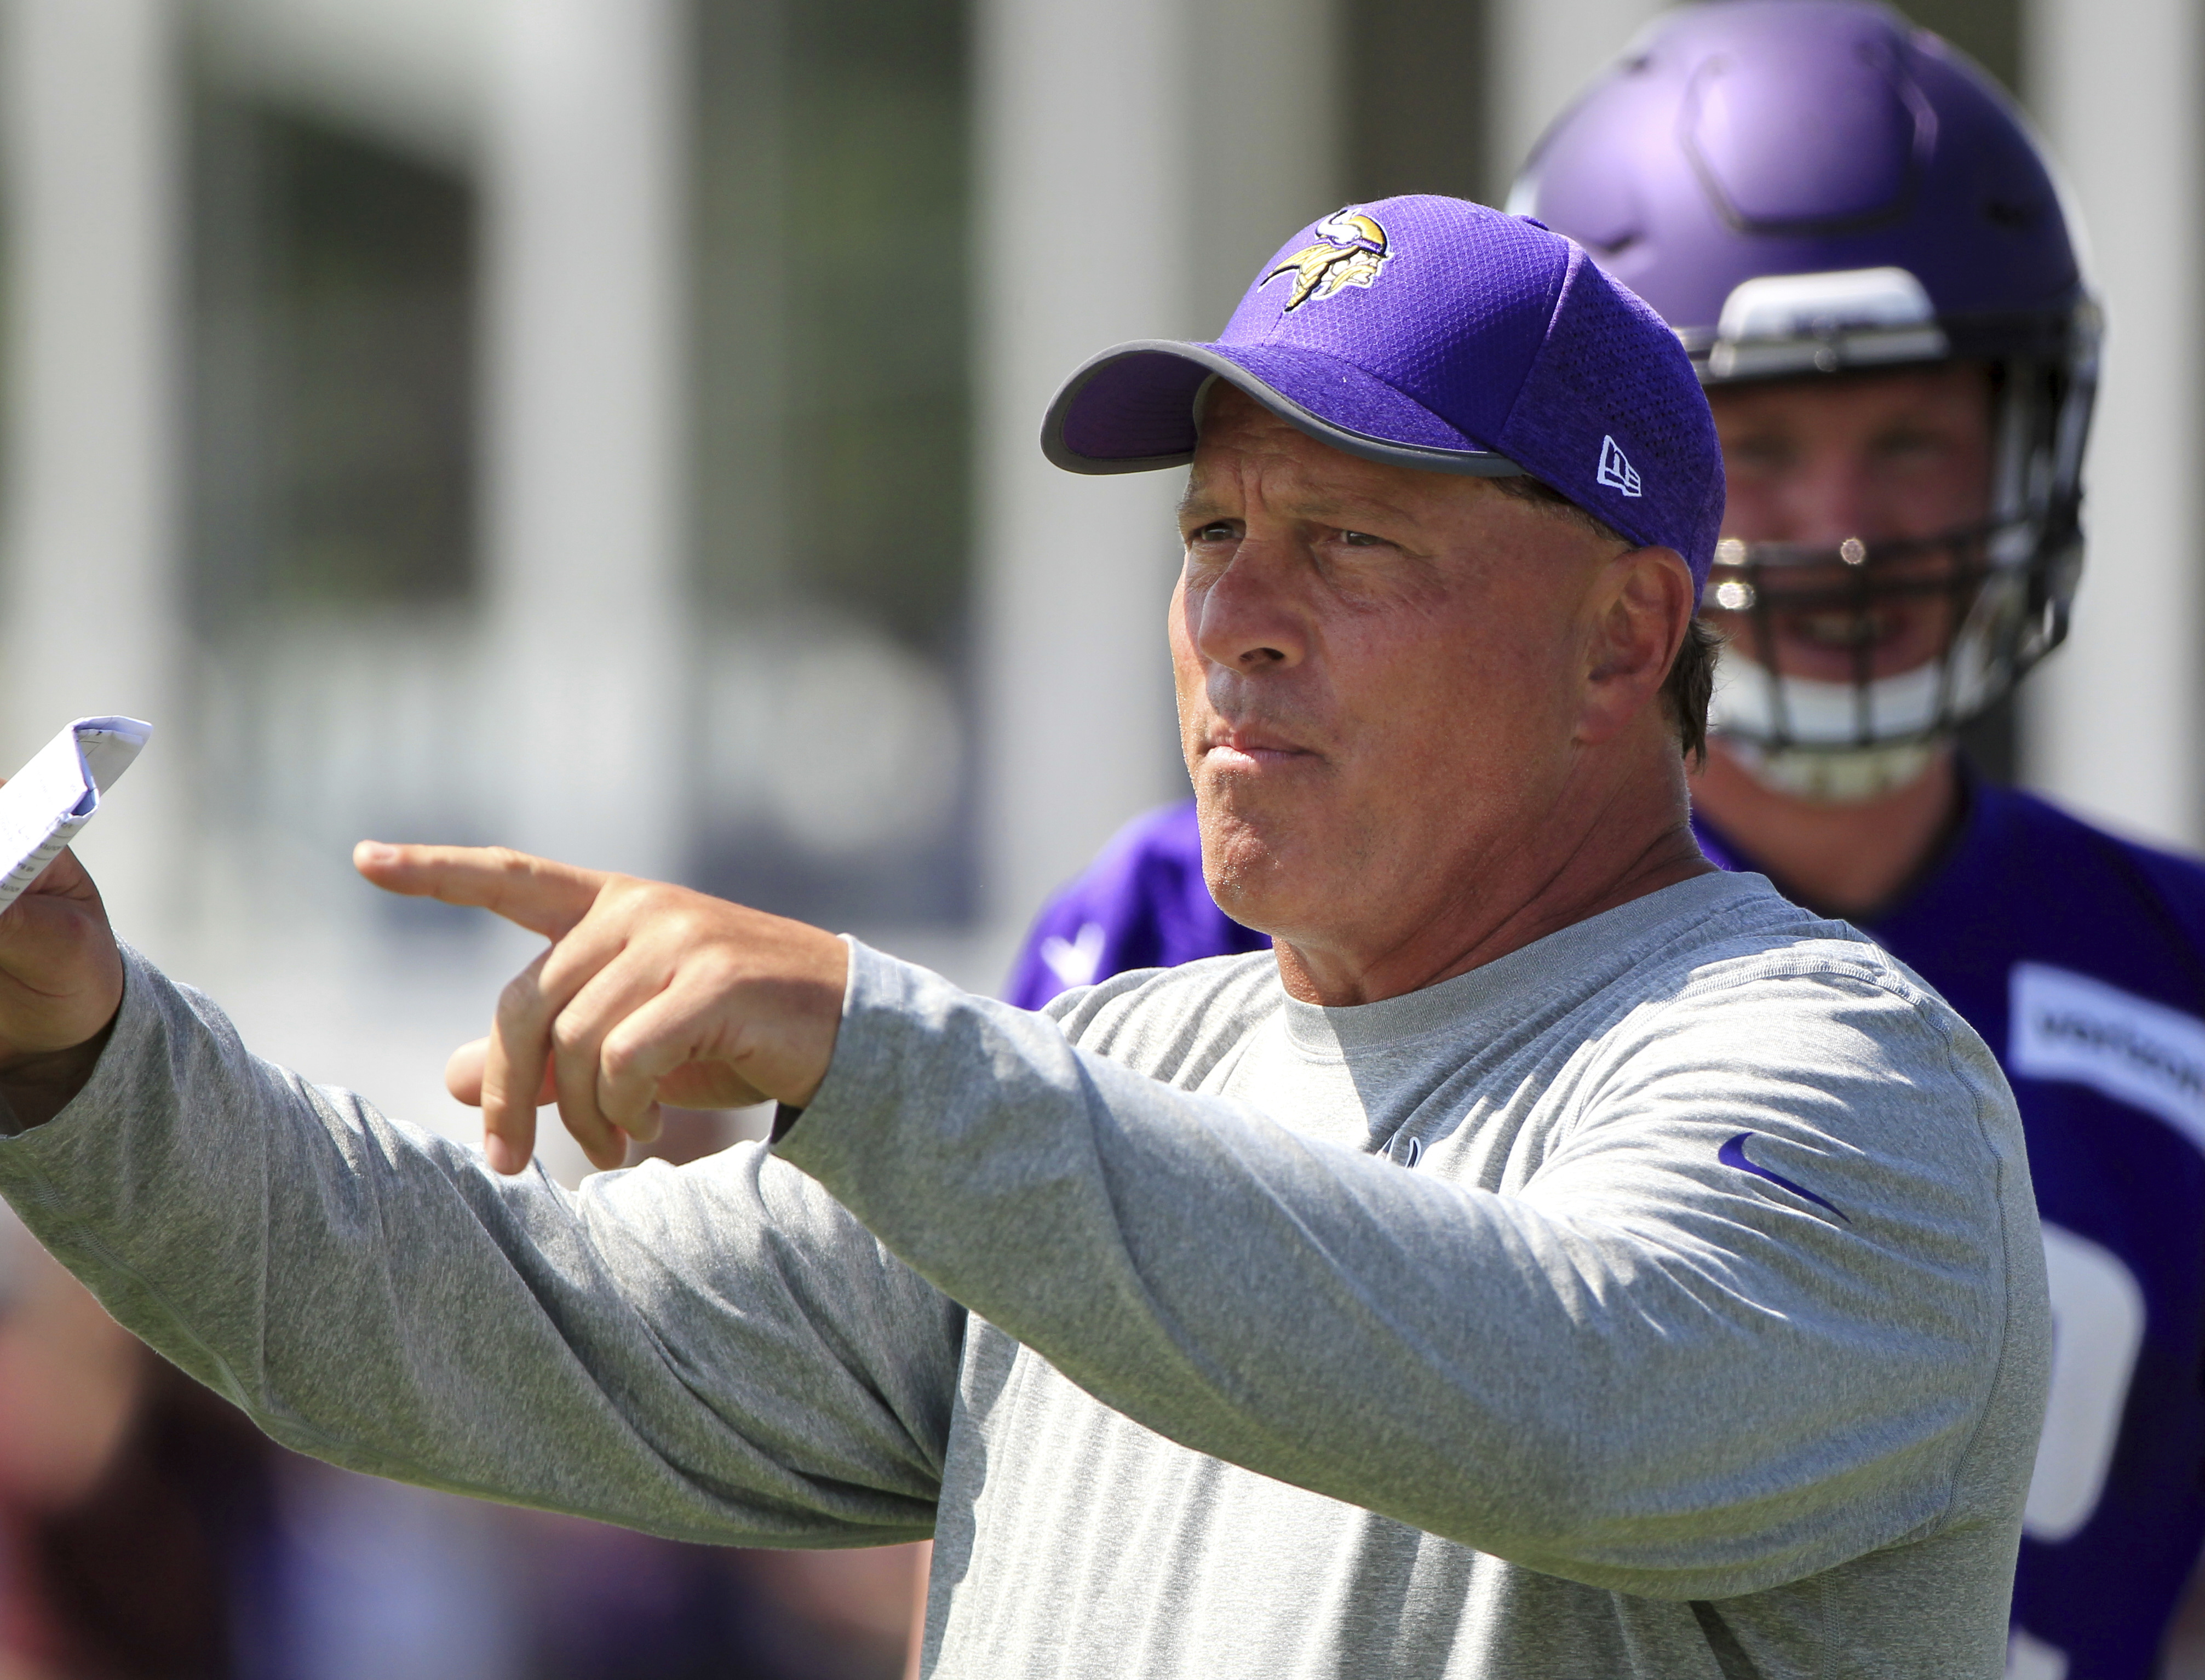 The Bears hired Clancy Barone as their new tight ends coach.